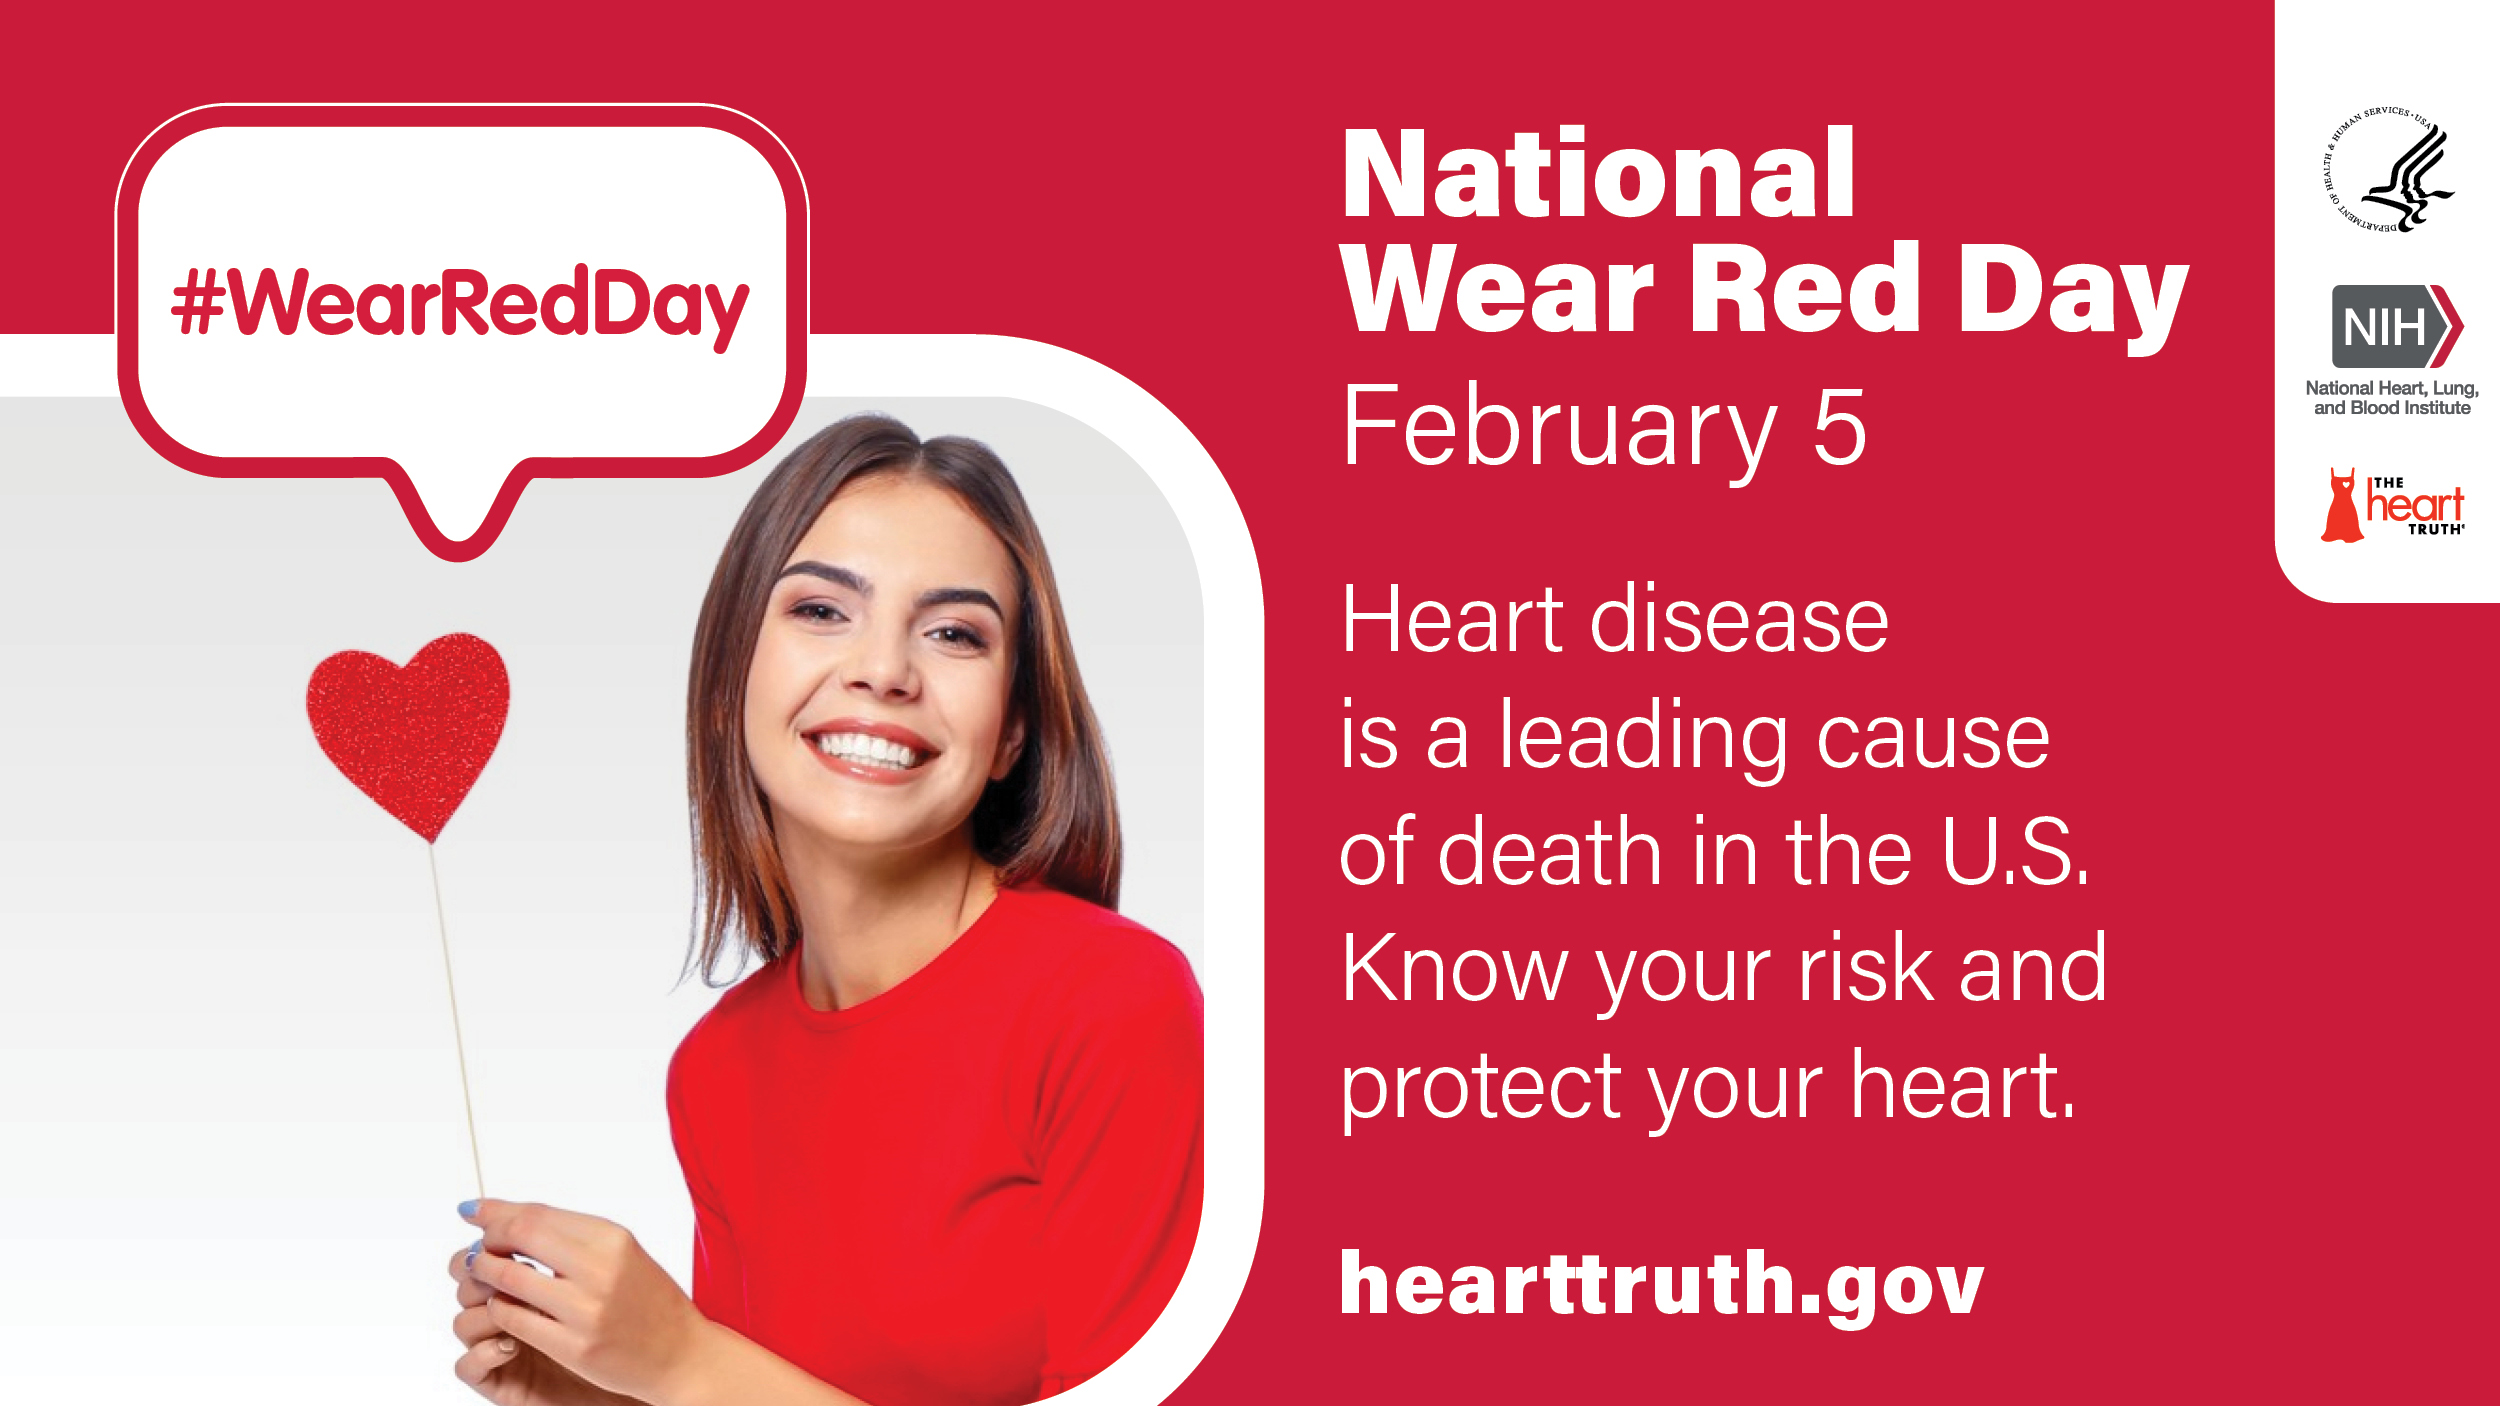 Photo of a woman wearing red with a sign above saying #WearRedDay. Hearttruth.gov. See description for details.